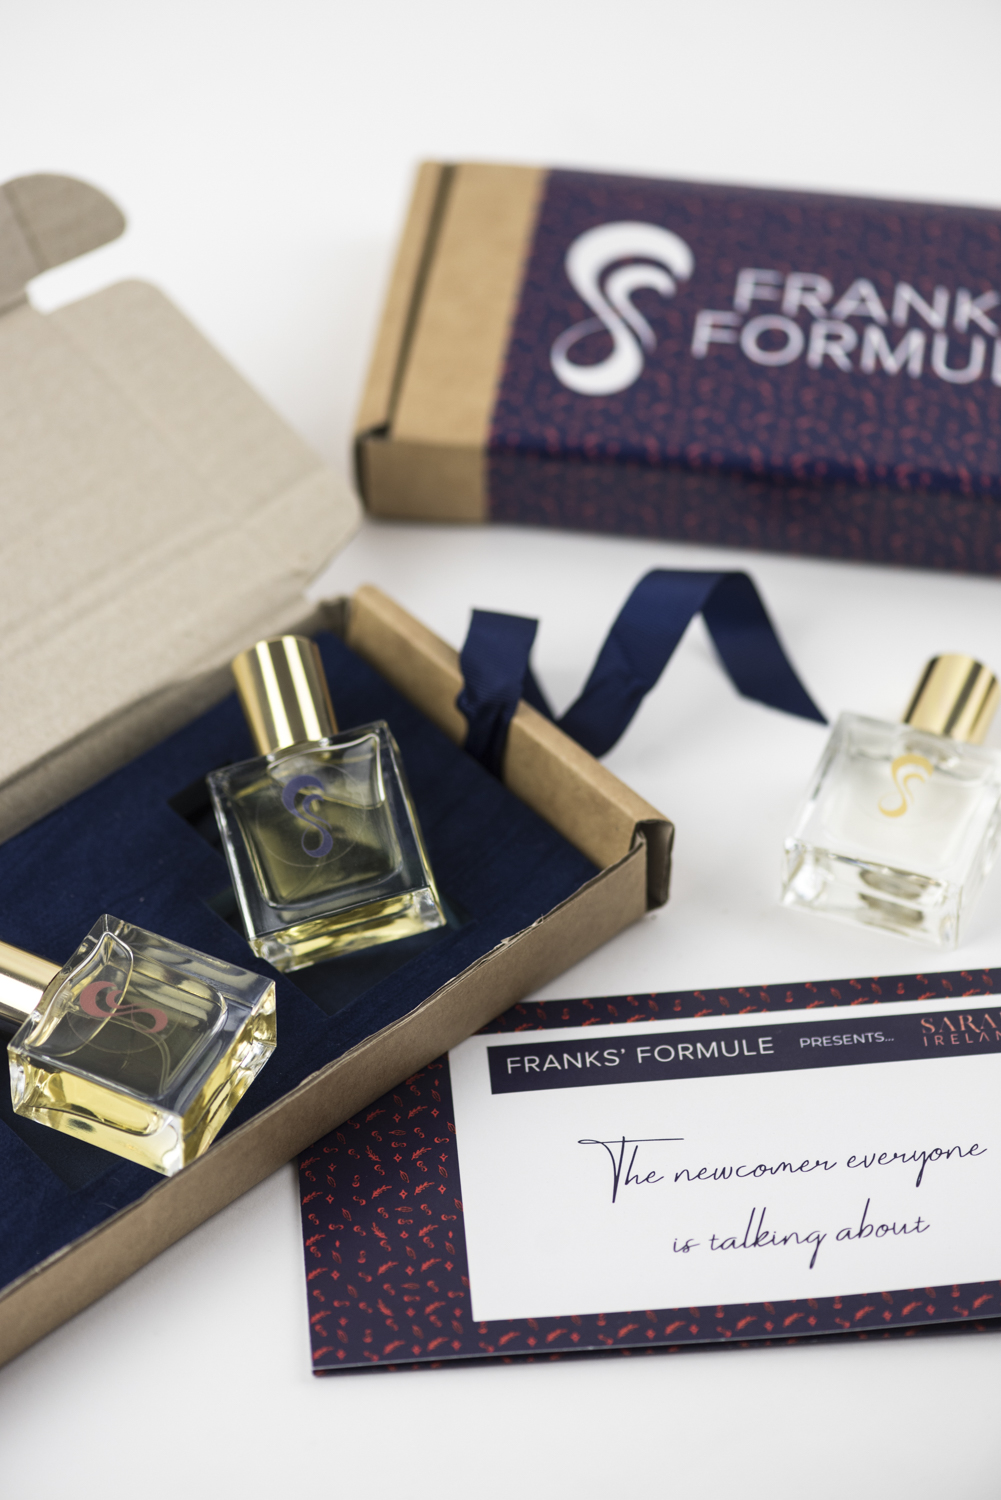 Perfume-Subscription-Box.jpg